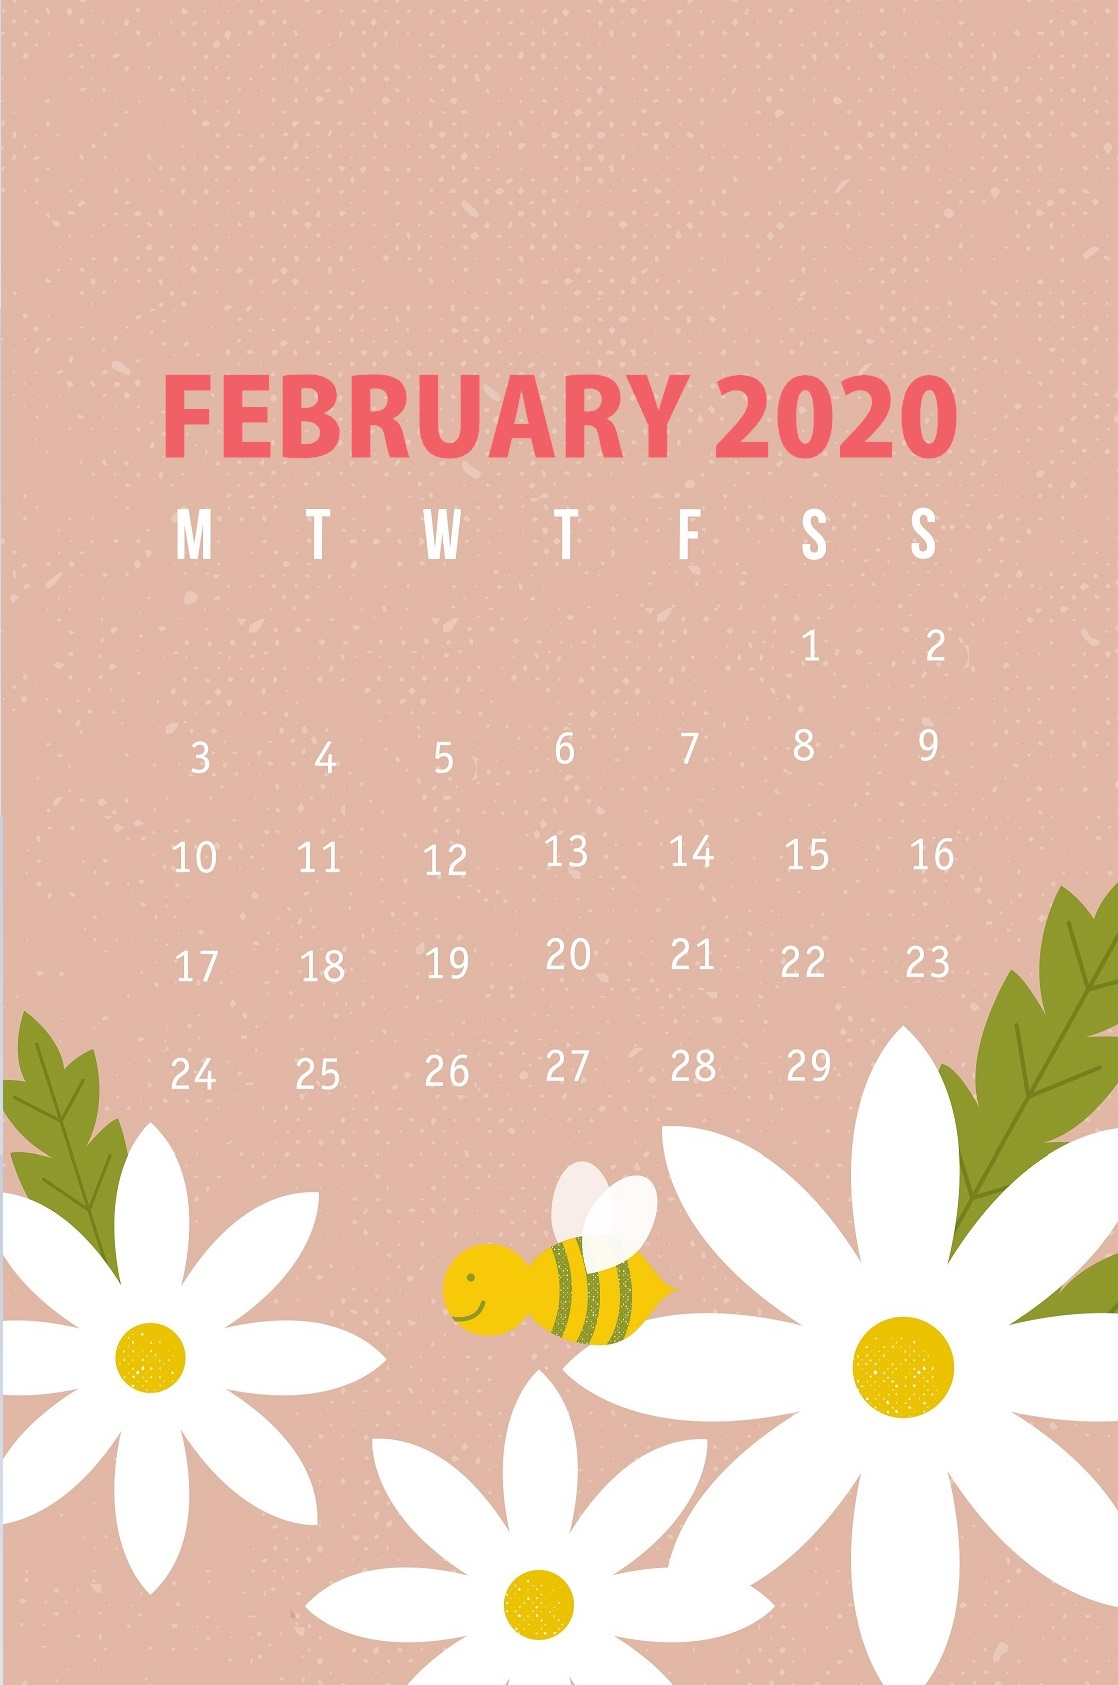 February 2020 iPhone Background